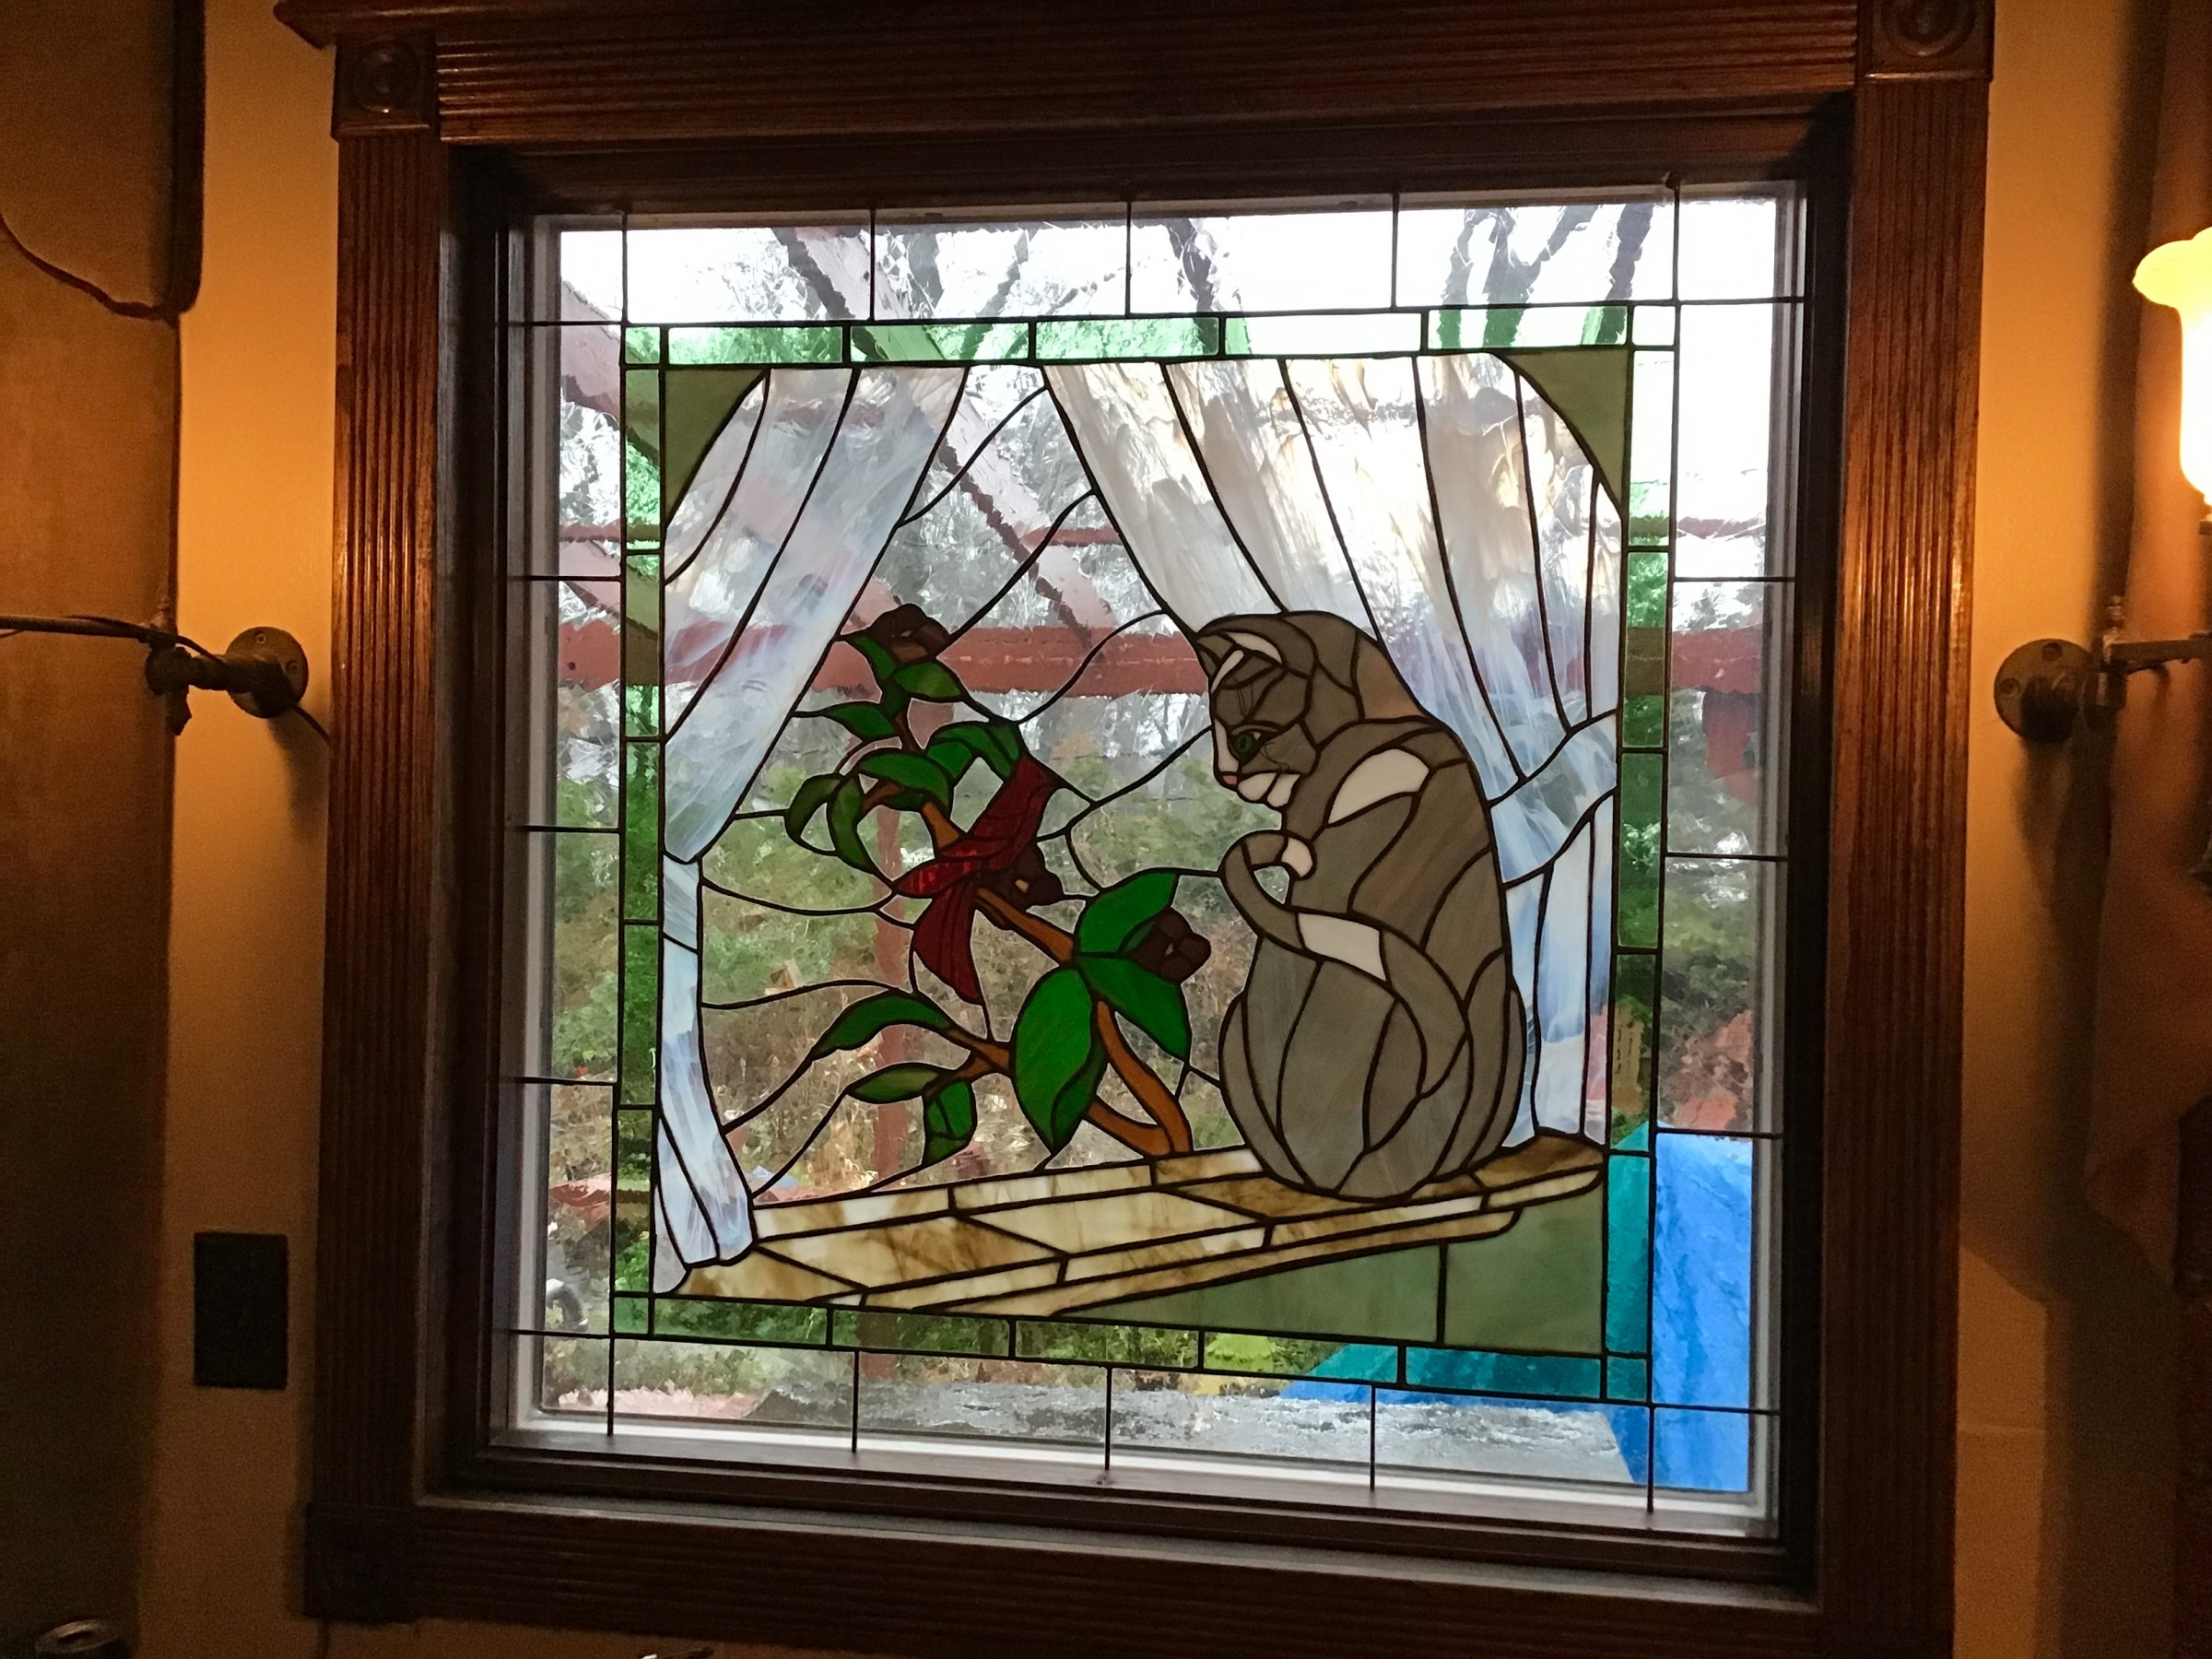 Adventures in Stained Glass-61644945-80d9-4e15-b4d6-12cc777cd60c.jpg